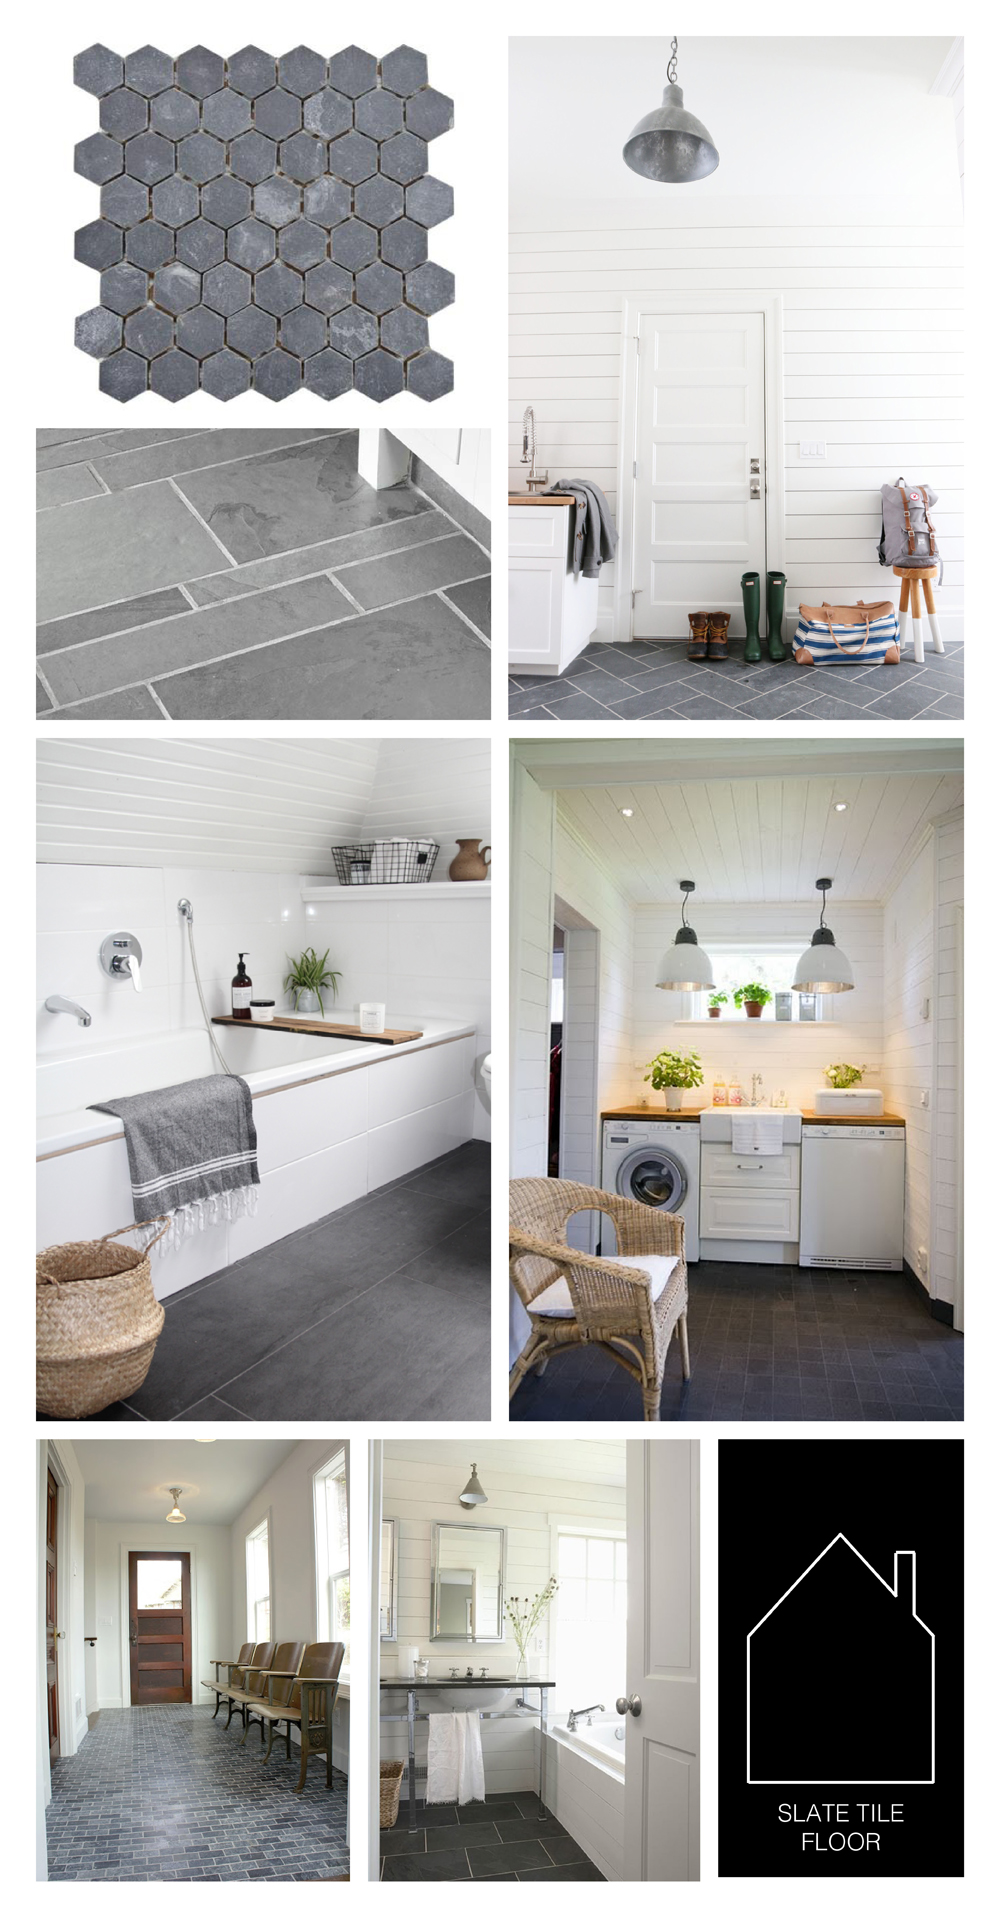 from top left - slate mosaic via  Home Depot  - herringbone pattern via  STUDIO MCGEE  -  striped pattern via  This Old House  - bathroom via  Design Dot  - laundry room source unknown - small brick pattern via  Chic Design Investments  -  bathroom via  Centsational Girl